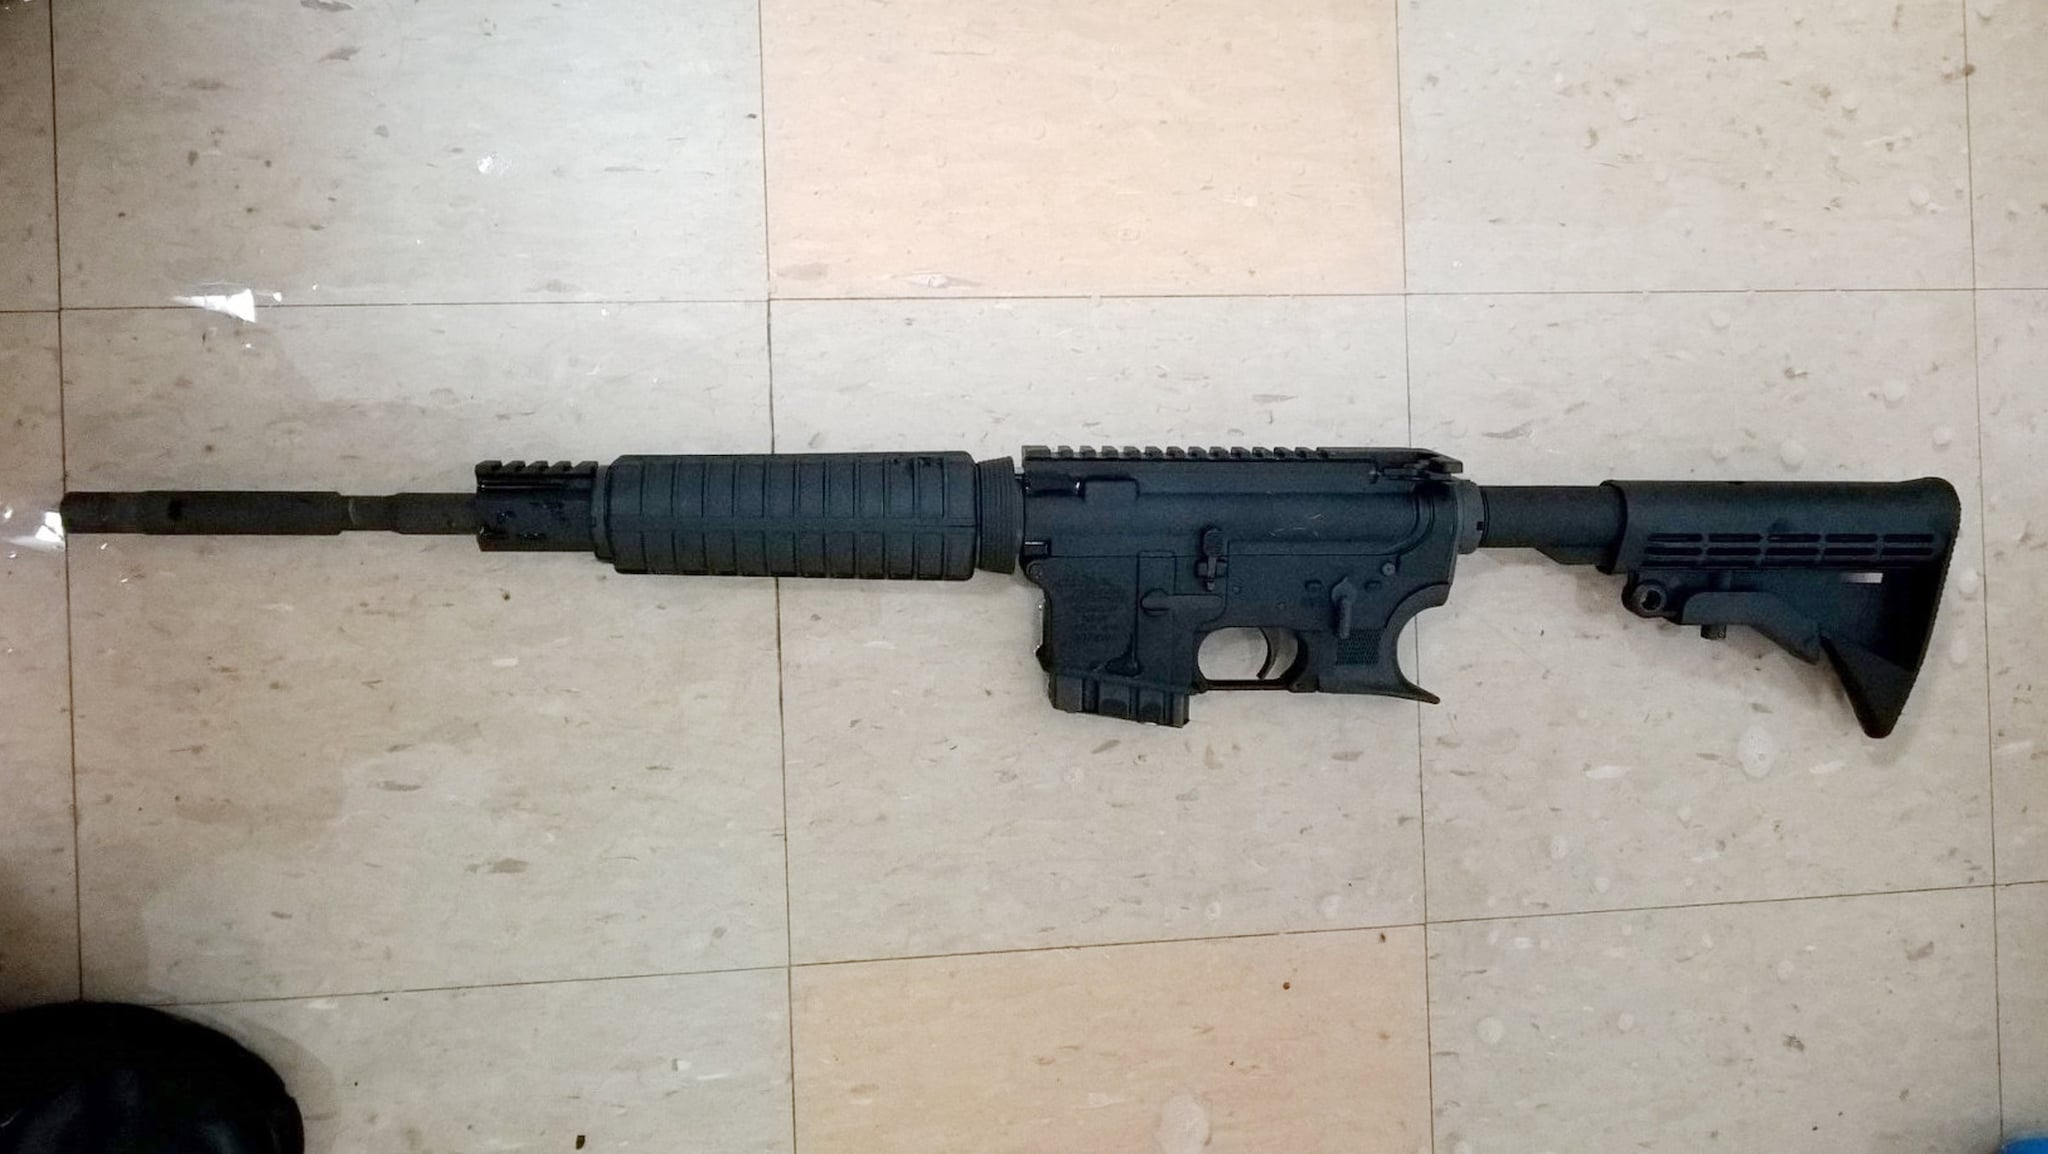 The AM-15 semiautomatic rifle allegedly used by Henry Bello to kill a clinician and himself before after wounding six others last week. (Photo: New York Police Department)